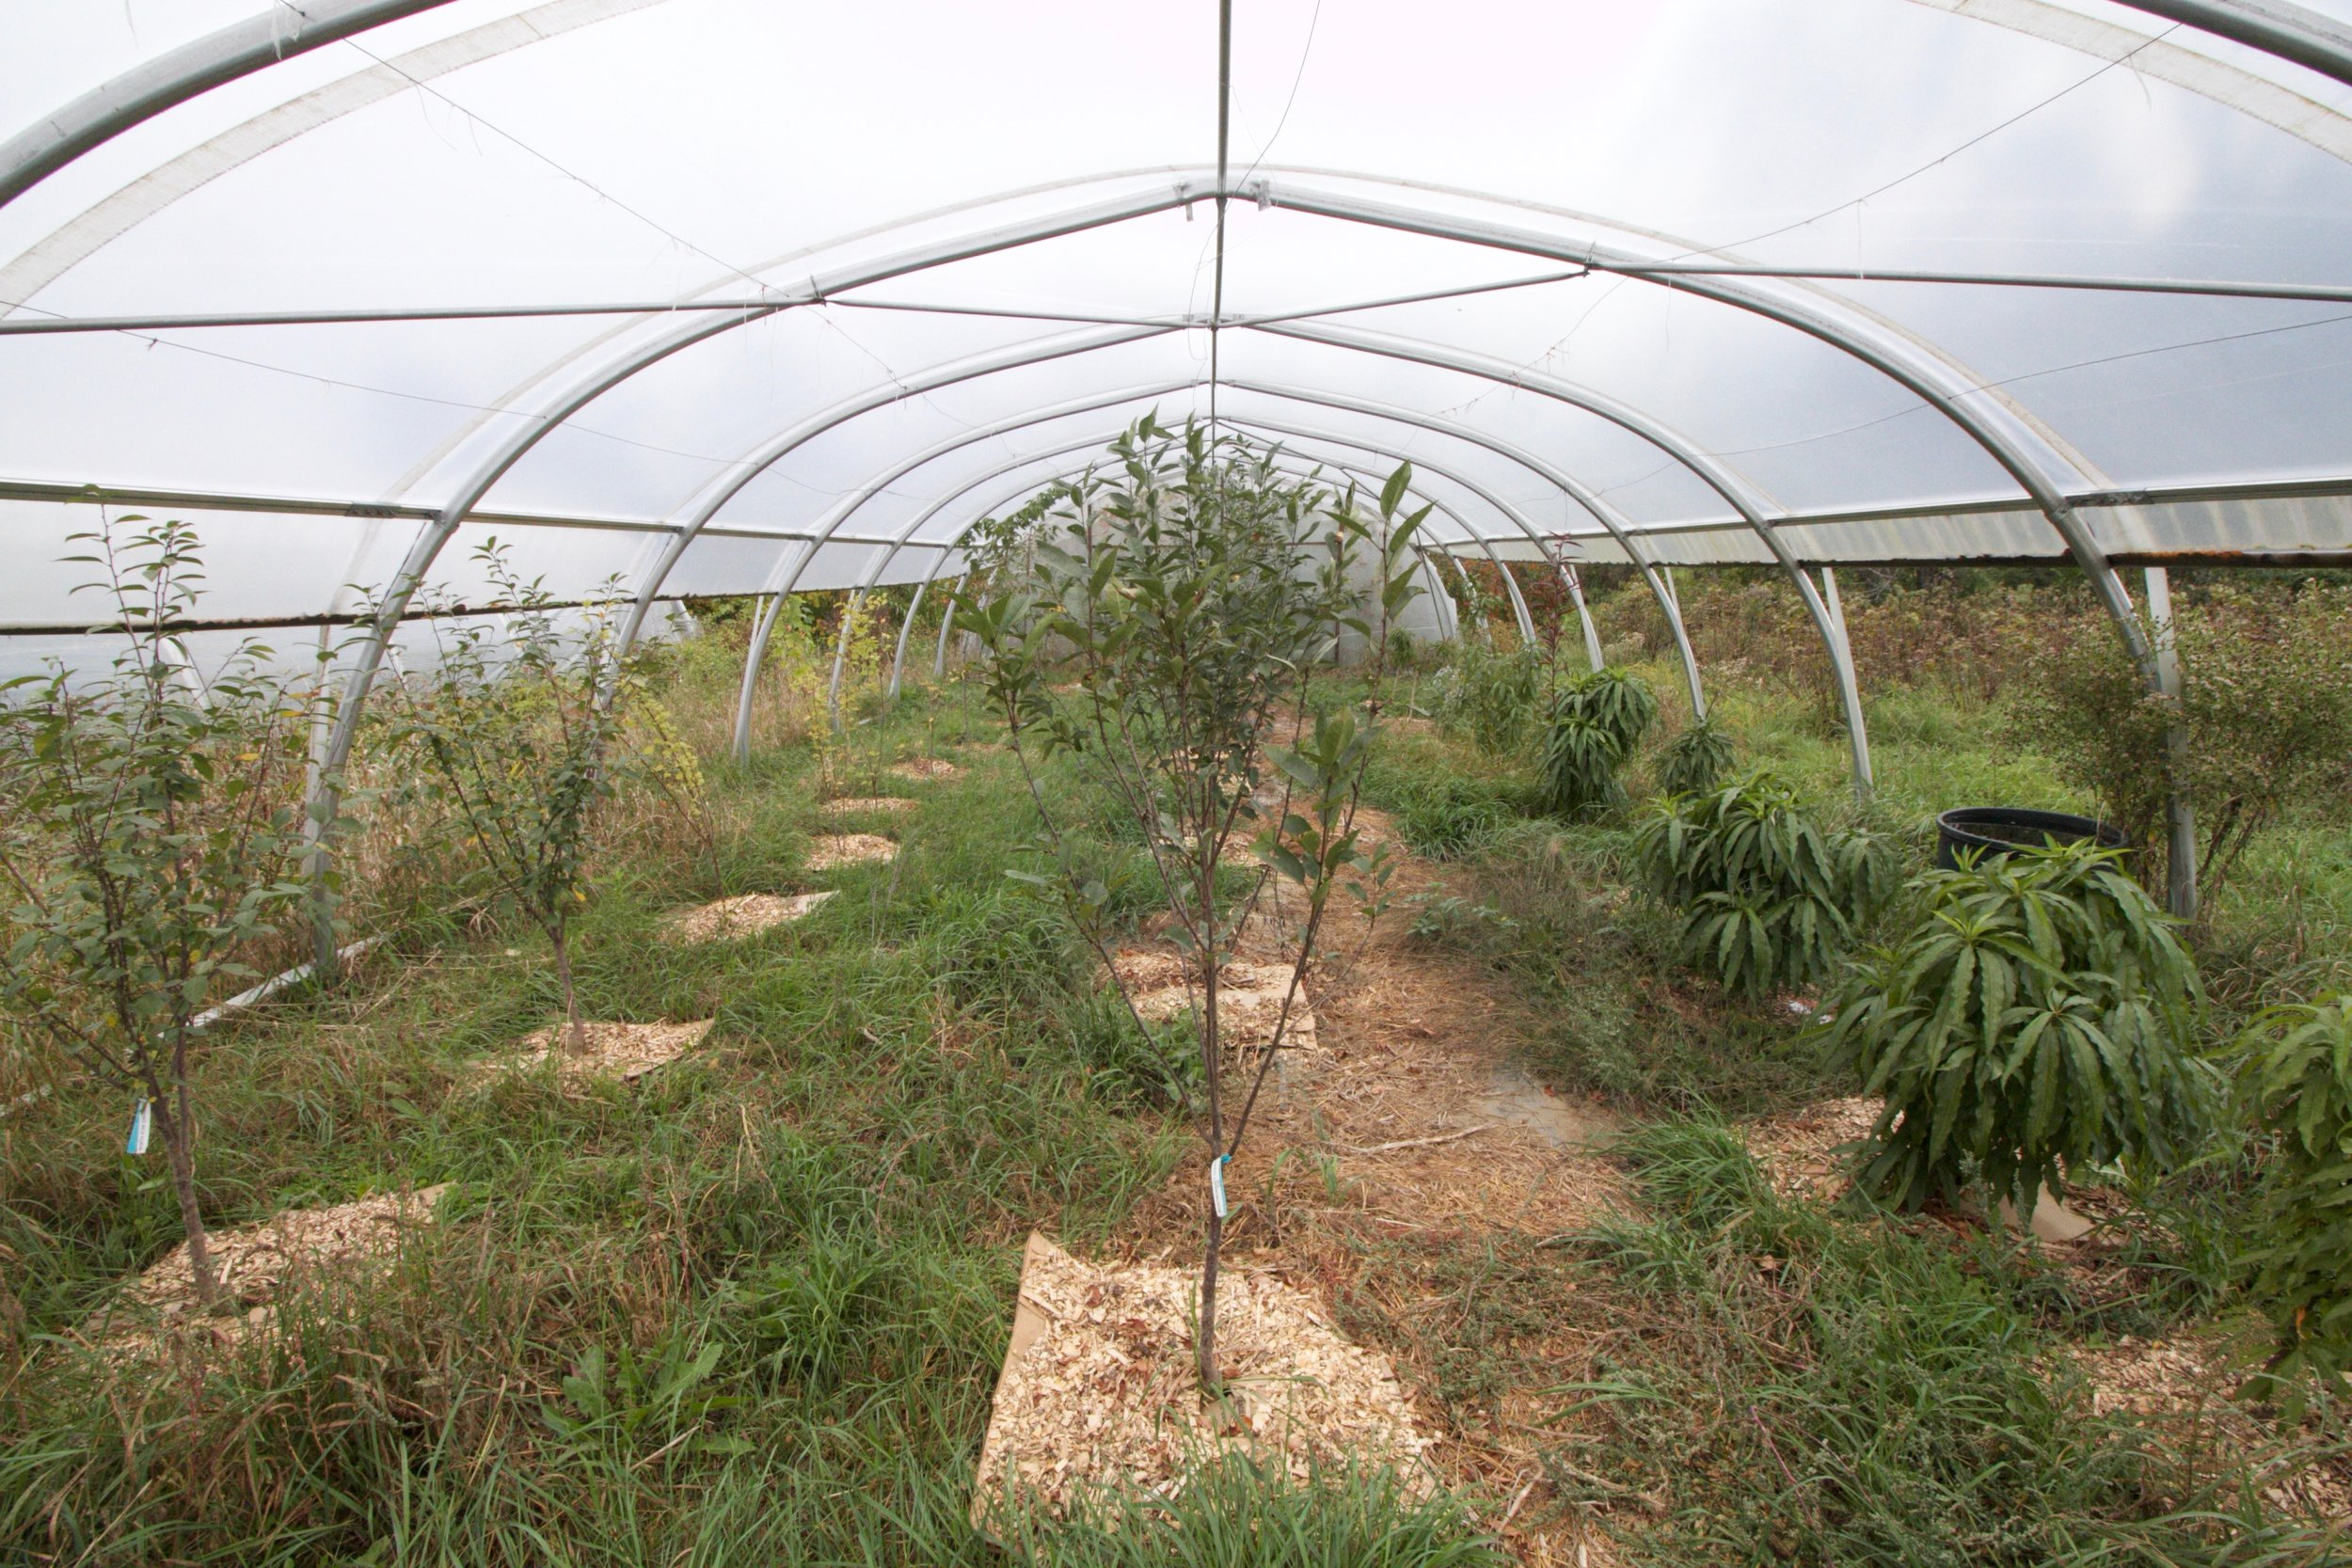 High tunnels extend the growing season of dwarf peaches, nectarines, and apples. The farm also grows raspberries in high tunnels, which can out-yield tomatoes as far as profit goes.